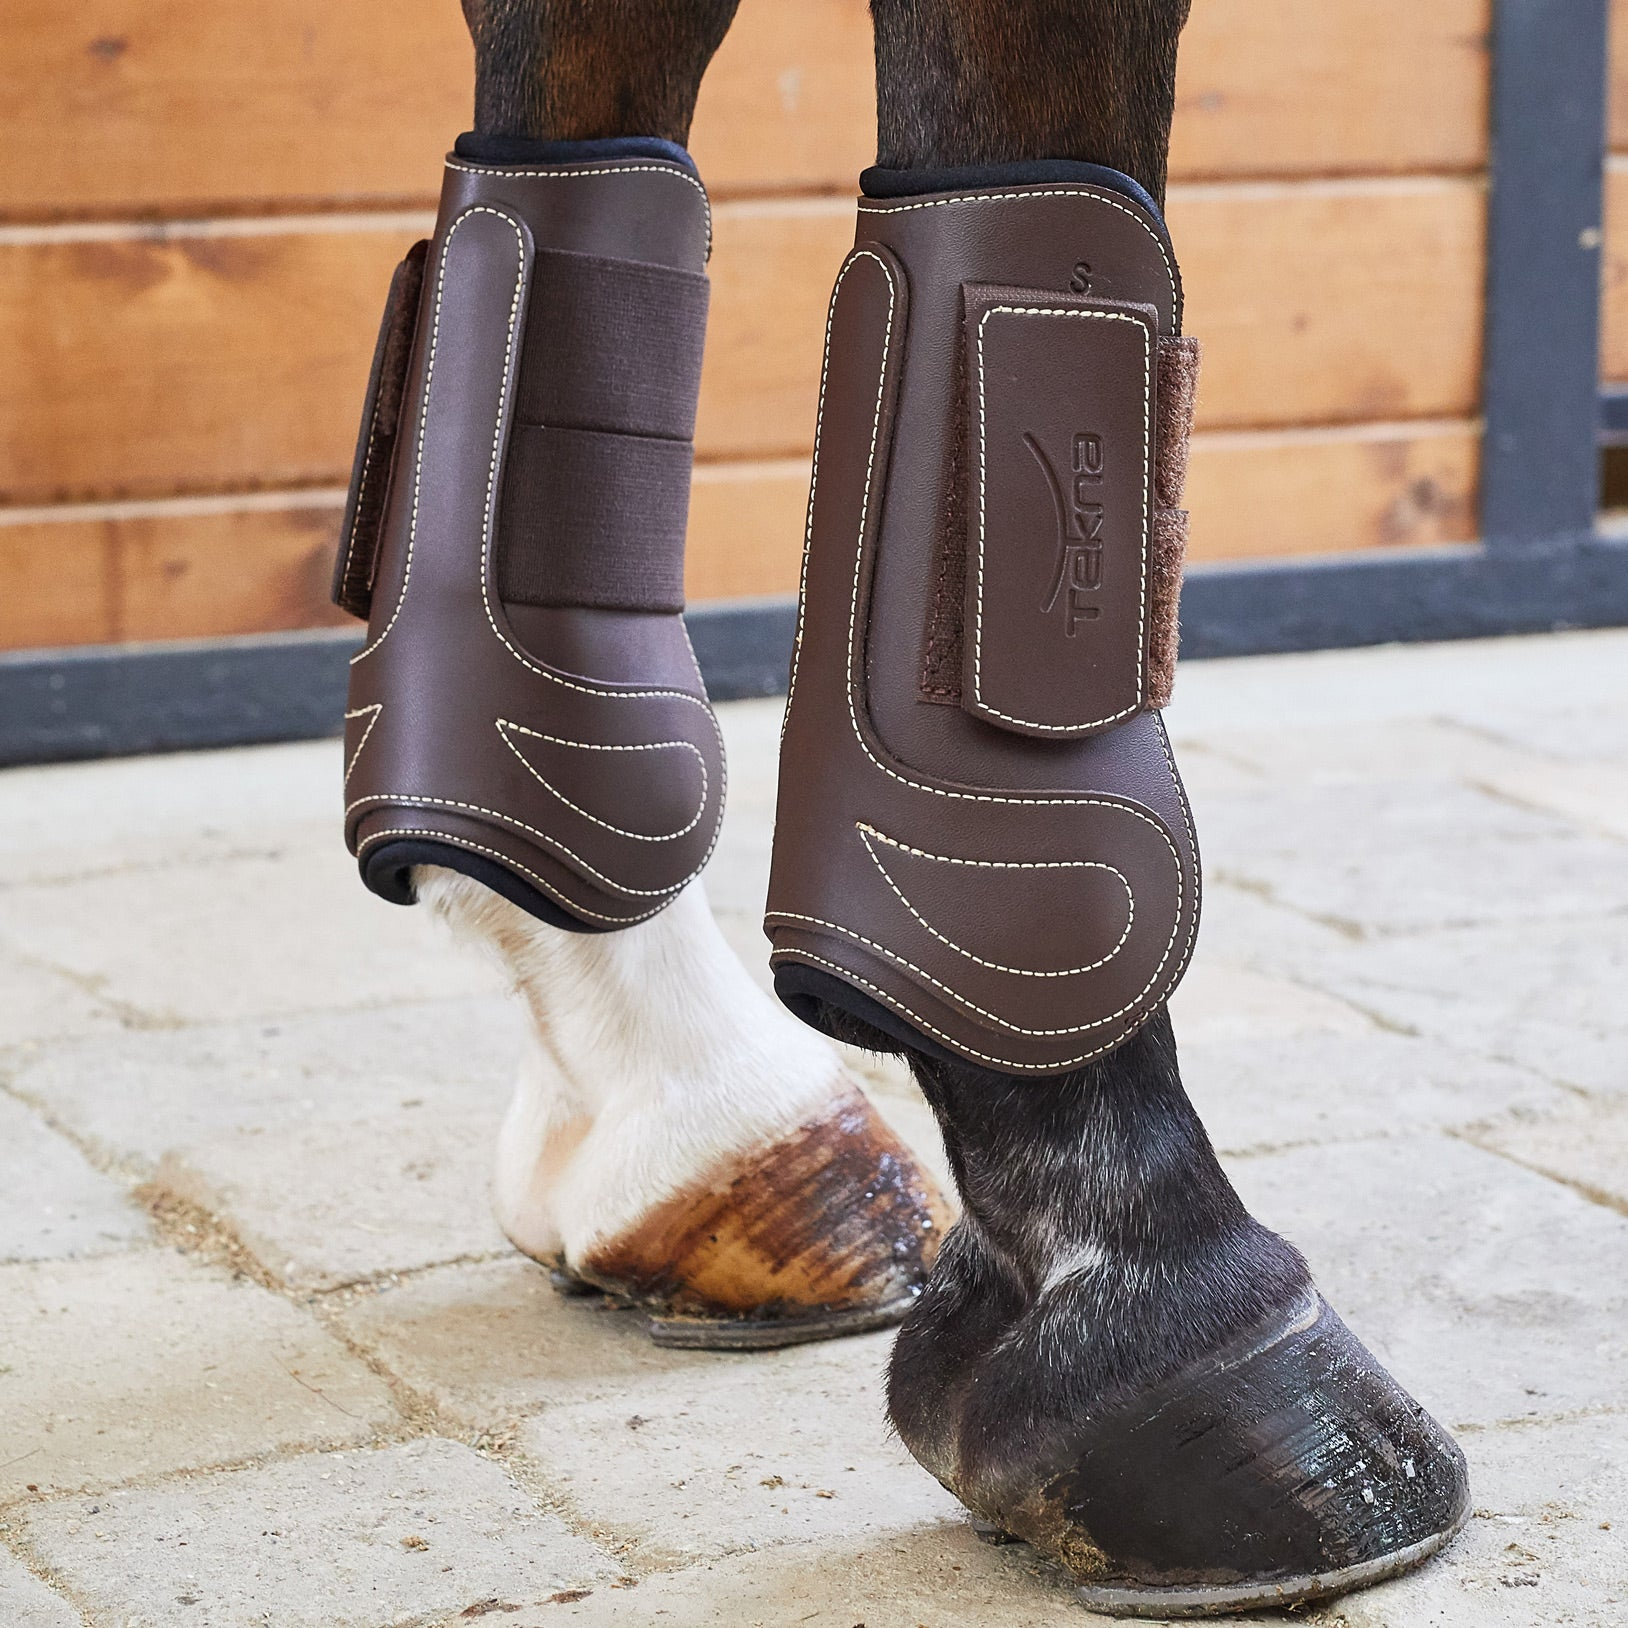 Tekna Fancy Stitched Hind Jump Boots with Neoprene Padding Quik-Clean